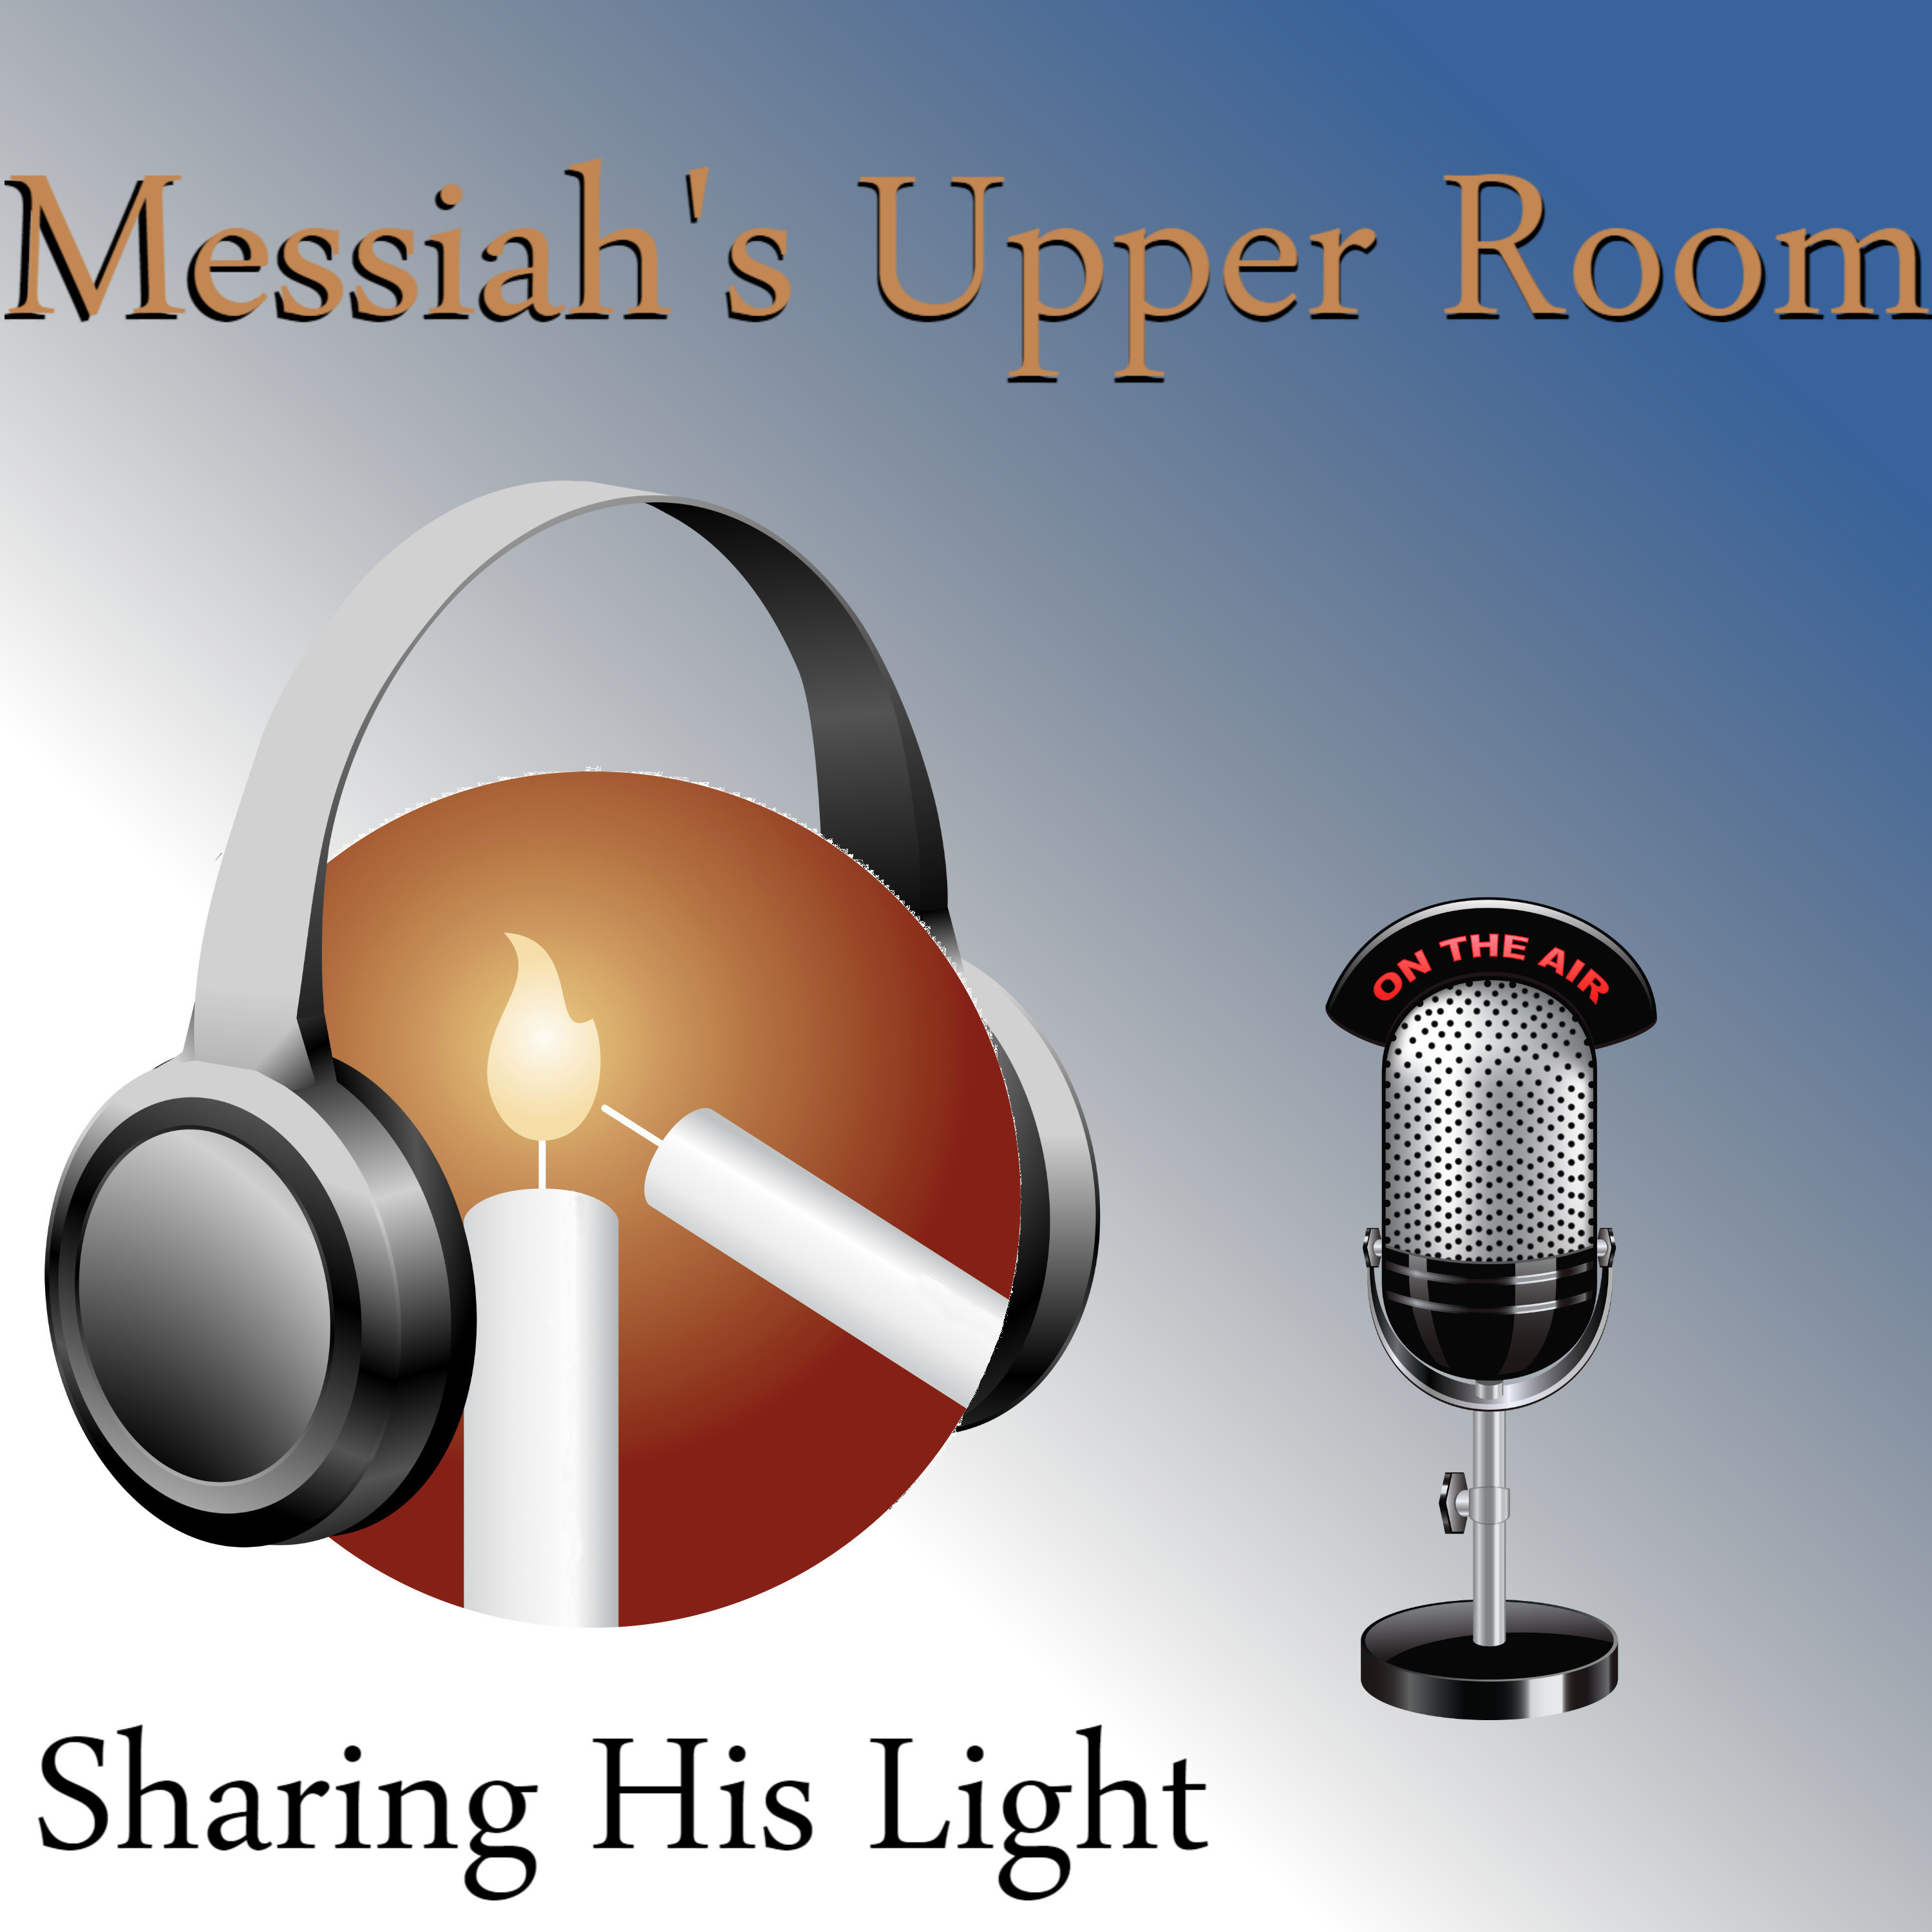 MURP 0045: The Righteous And Unrighteous